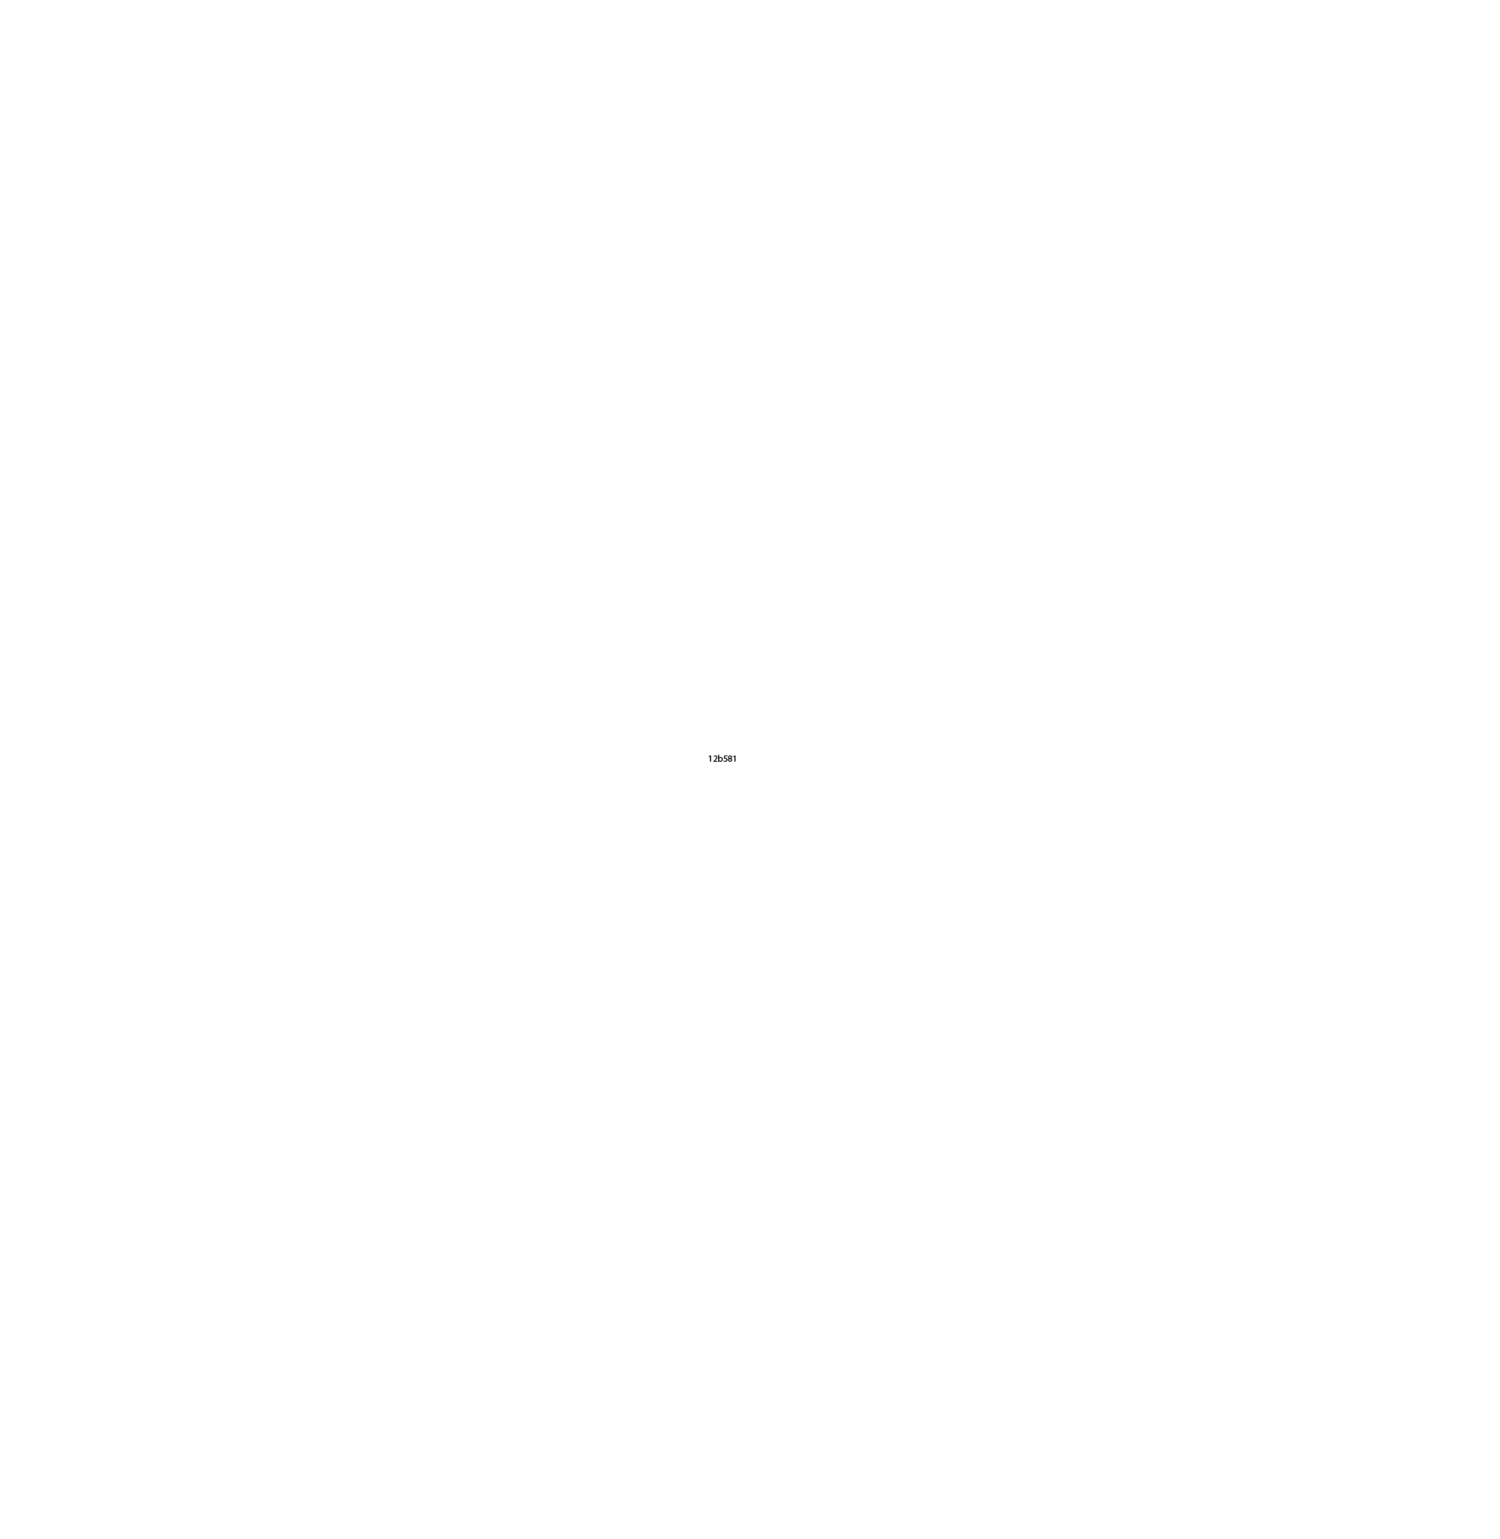 Acupuncture Origins